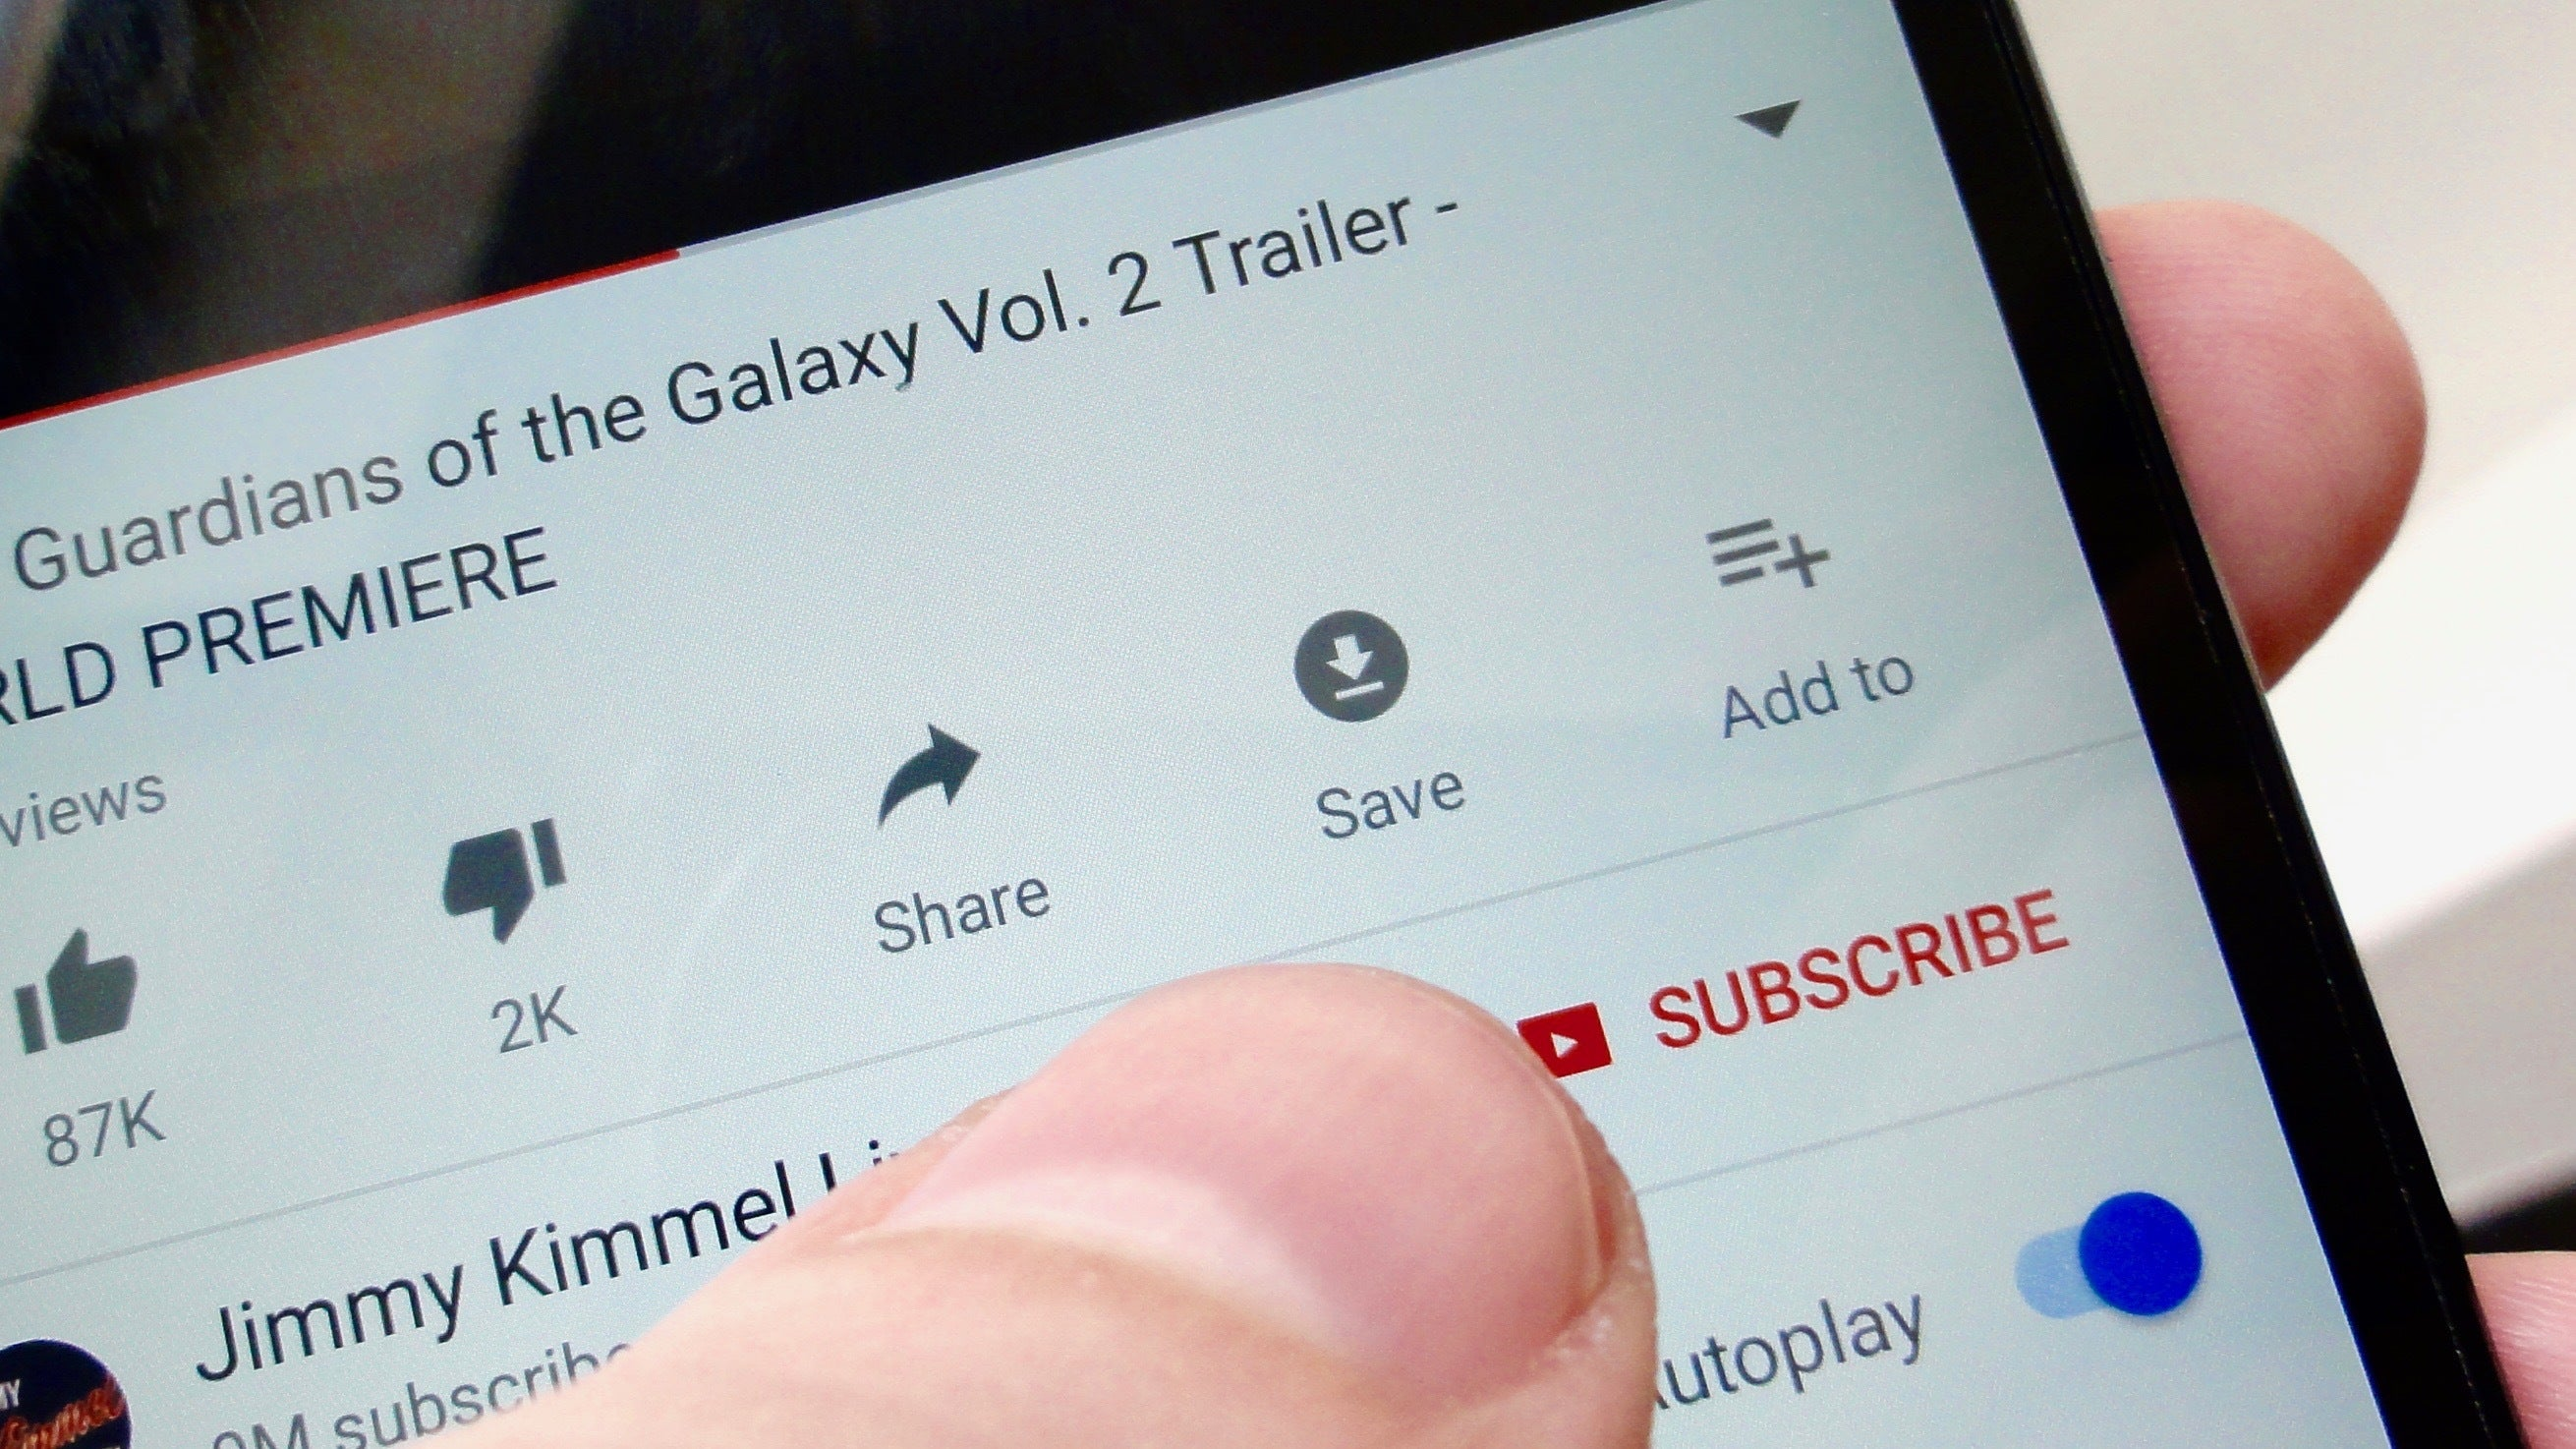 6 super YouTube tricks for Android and iOS | PCWorld